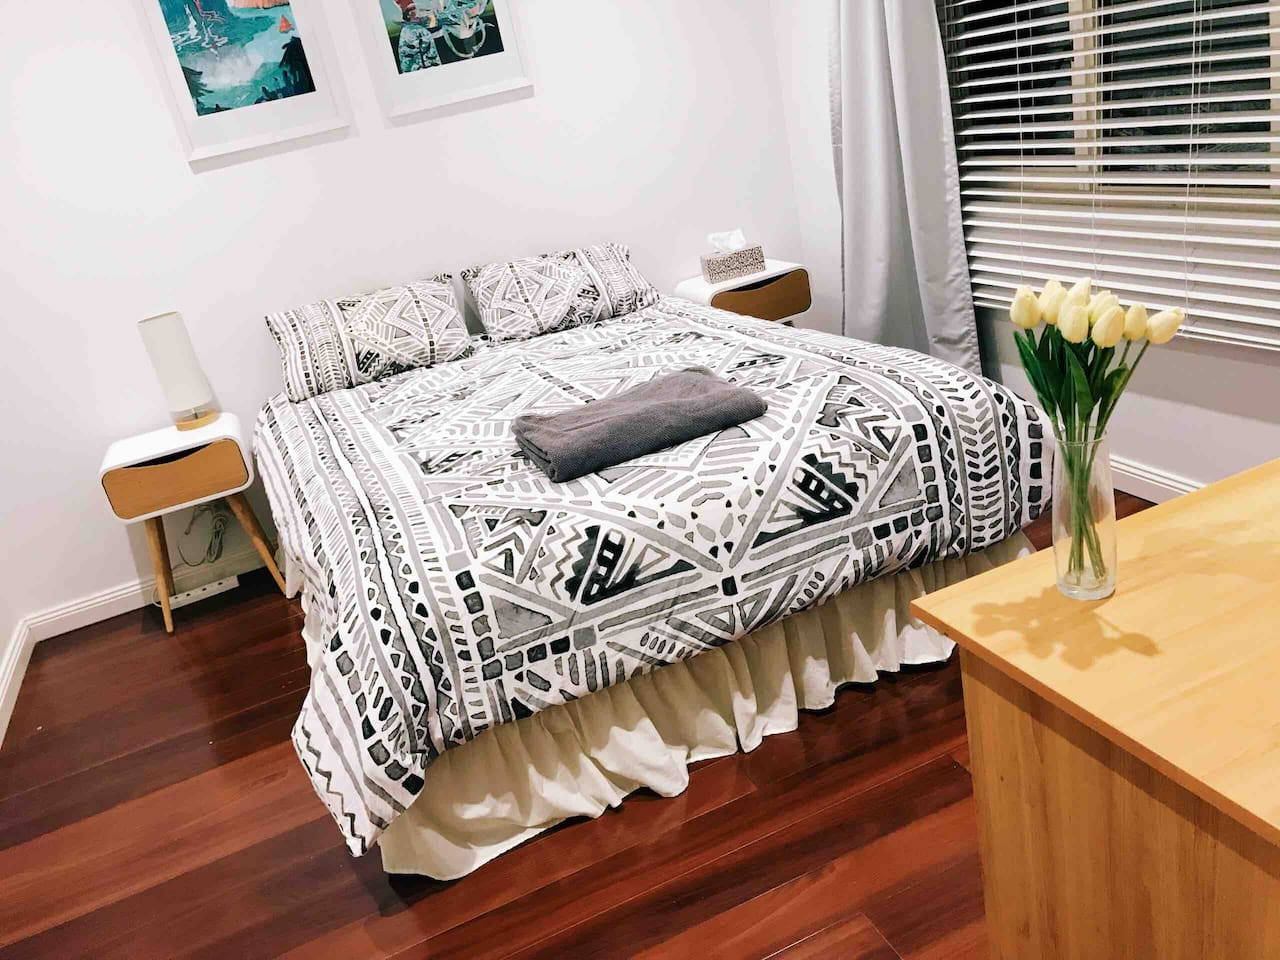 Private bedroom for 1 or 2 people.